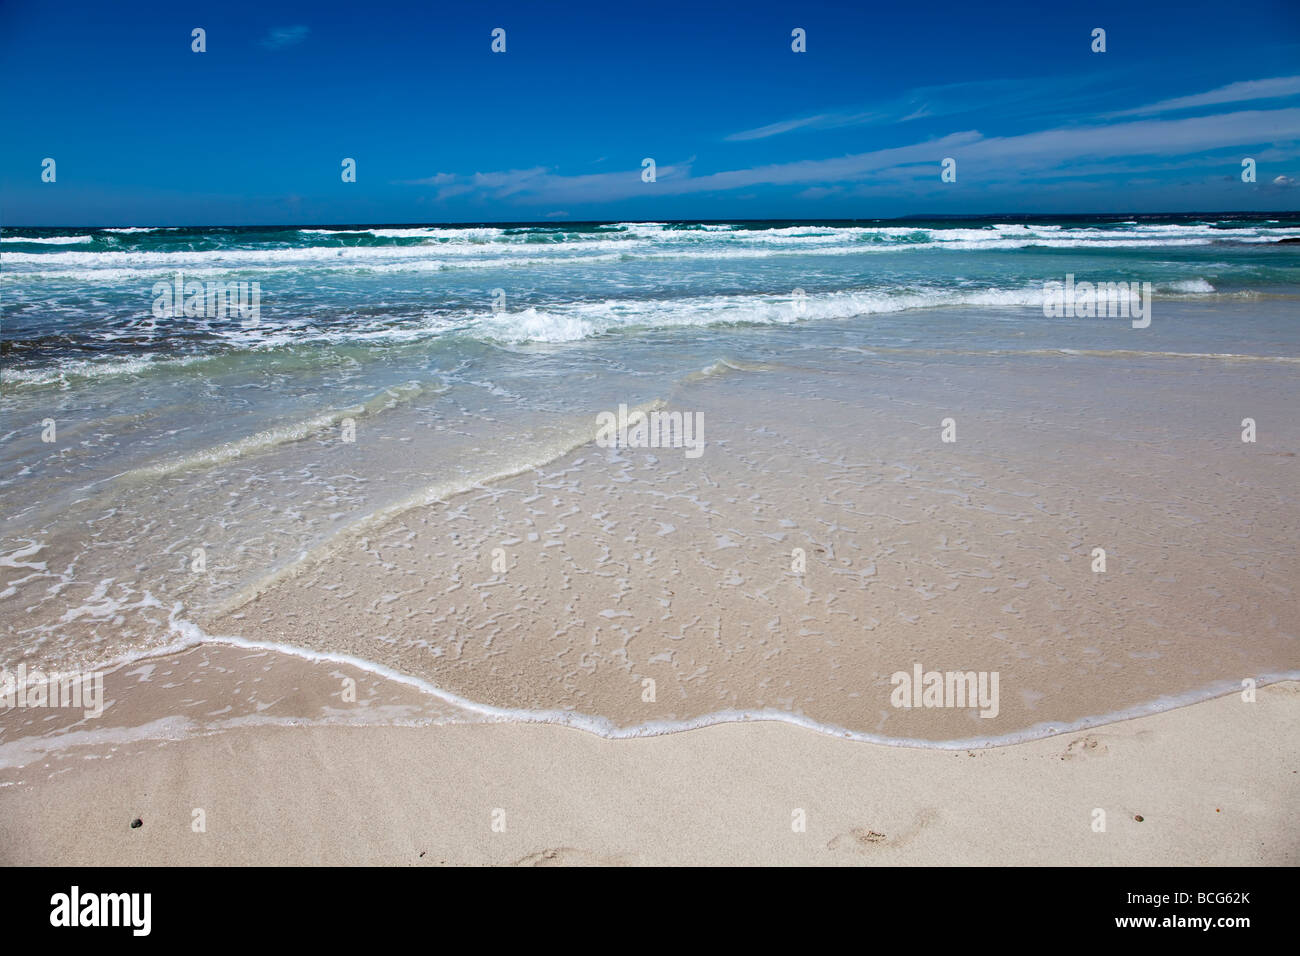 Waves and shallows on beach Platja des Trenc Mallorca Spain Stock Photo